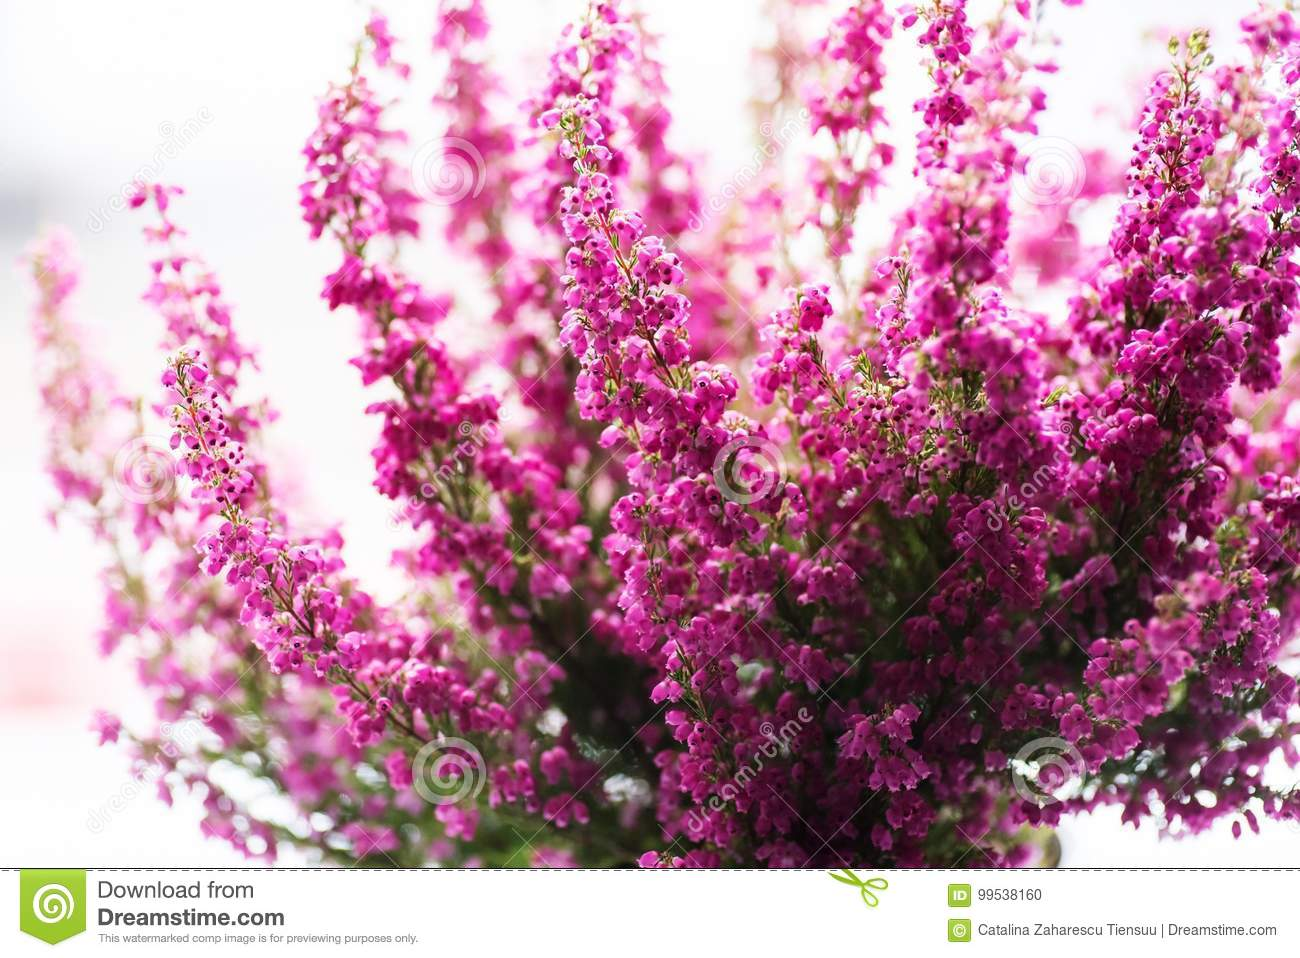 Erica Gracilis Erica Gracilis Winter Heather In Full Blossom Stock Photo Image